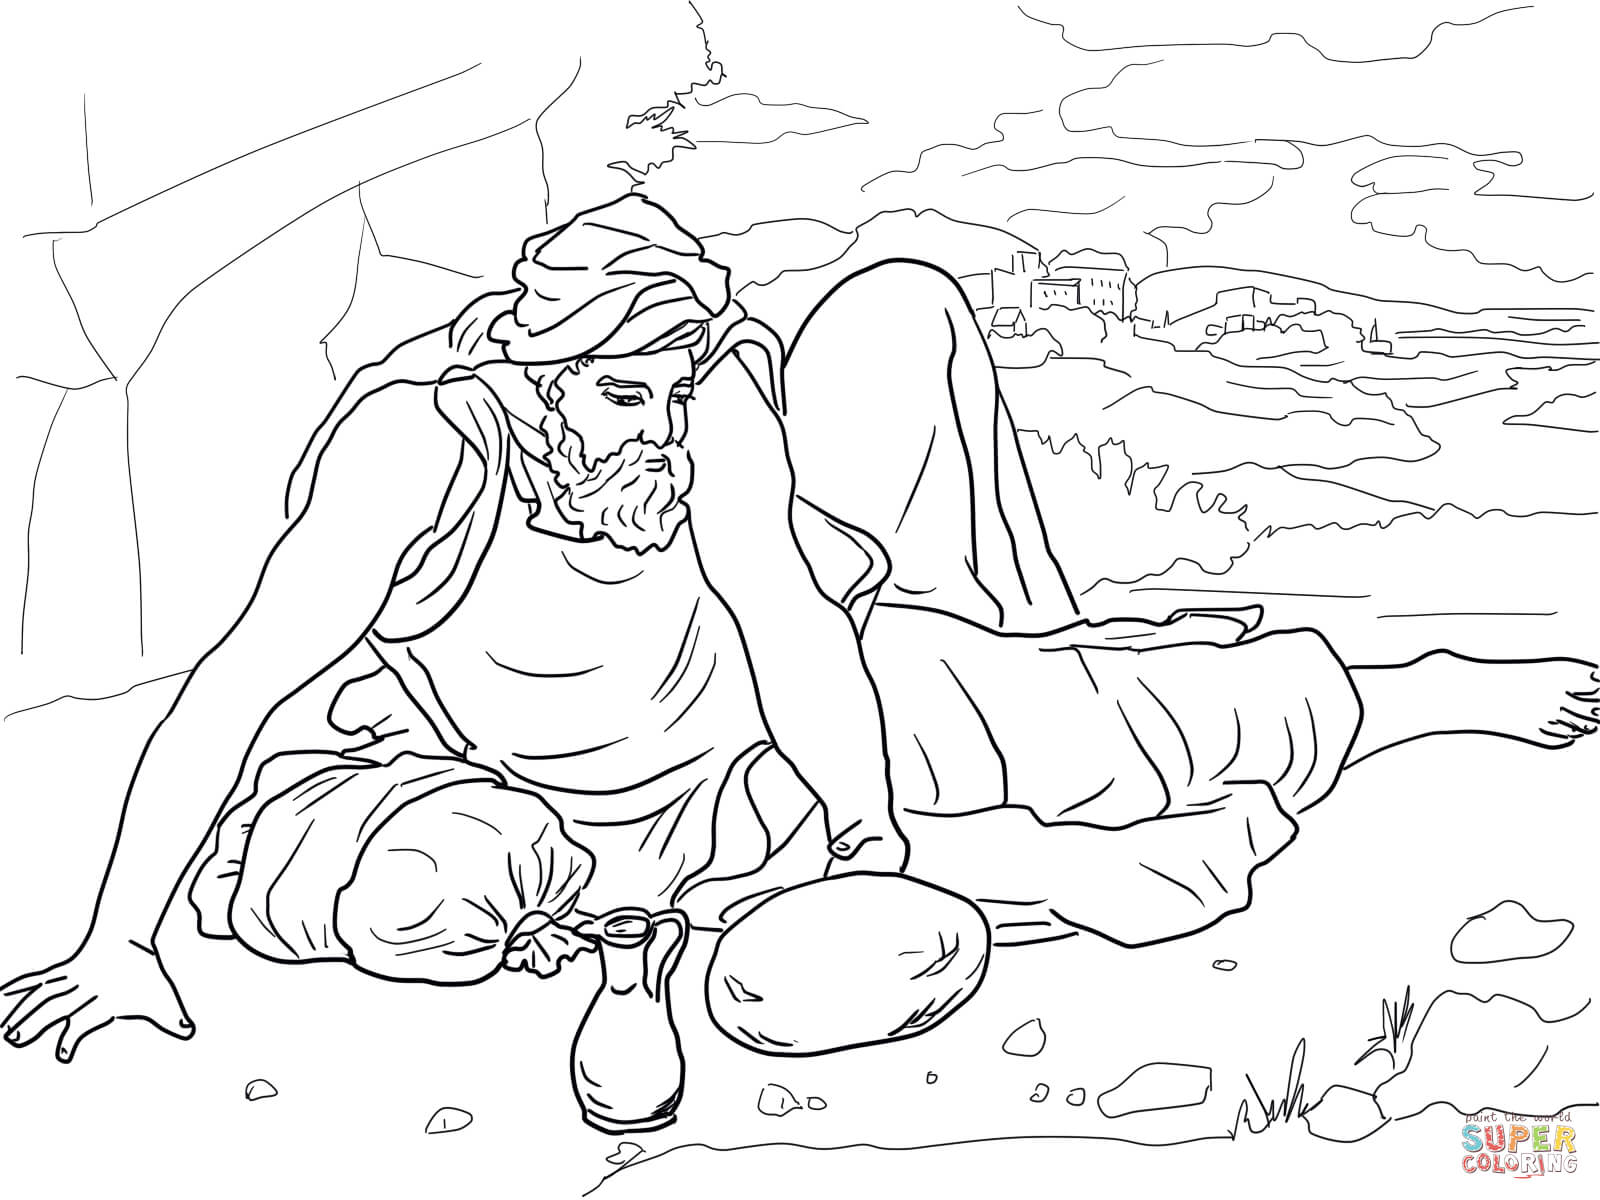 Elijah In The Wilderness Coloring Page